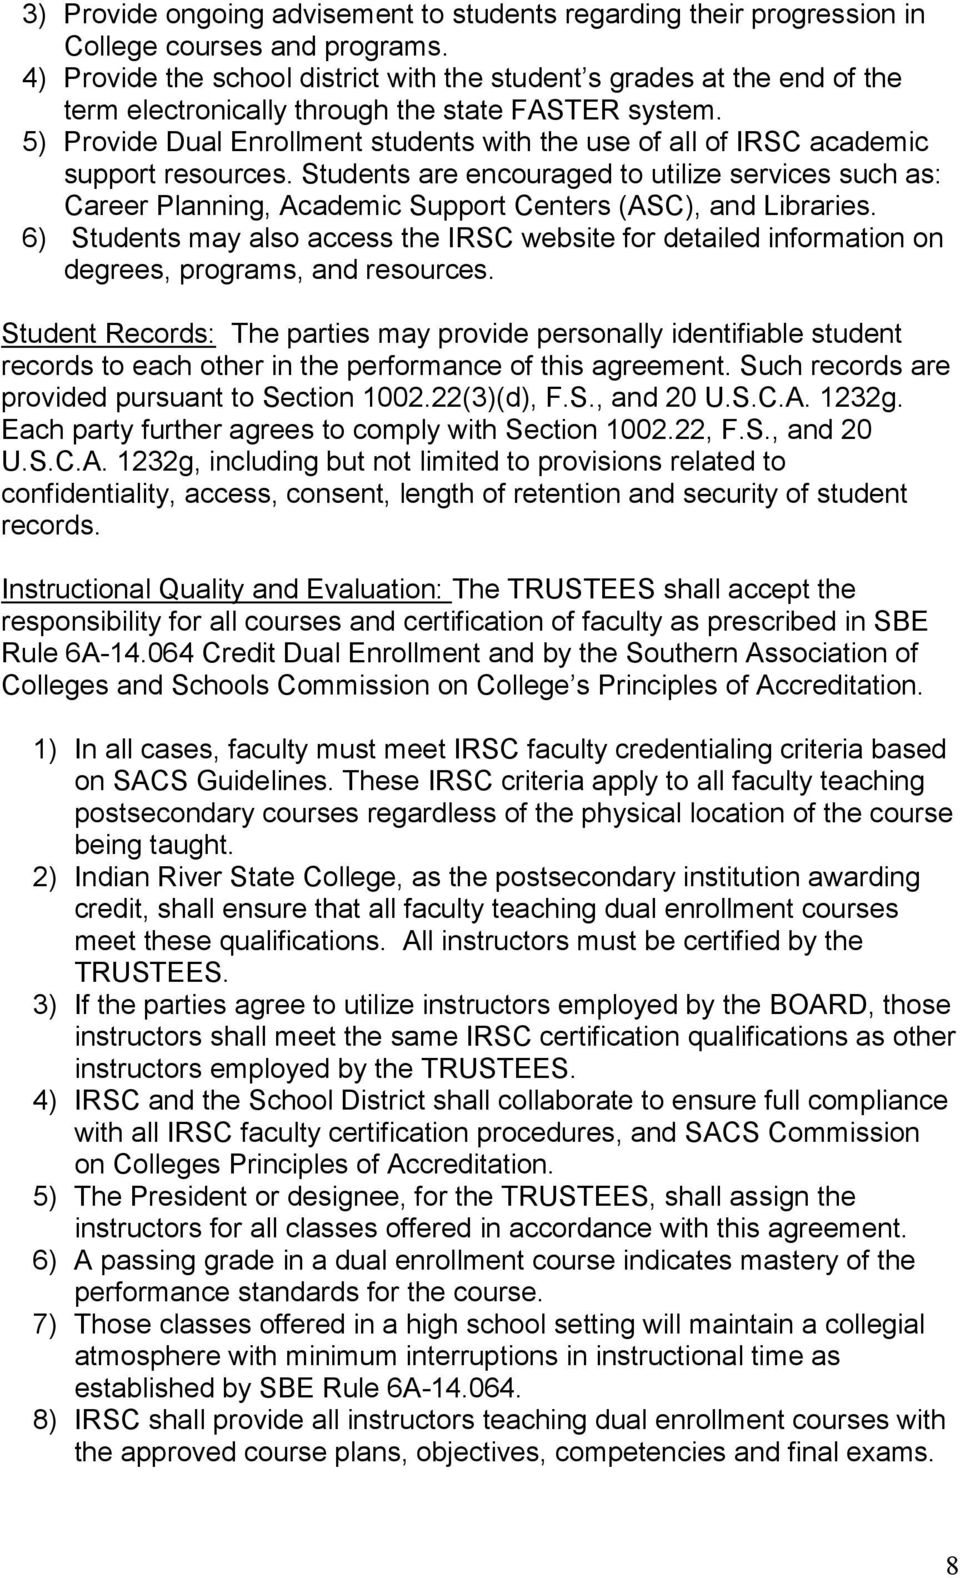 5) Provide Dual Enrollment Students With The Use Of All Of Irsc Academic  Support Resources